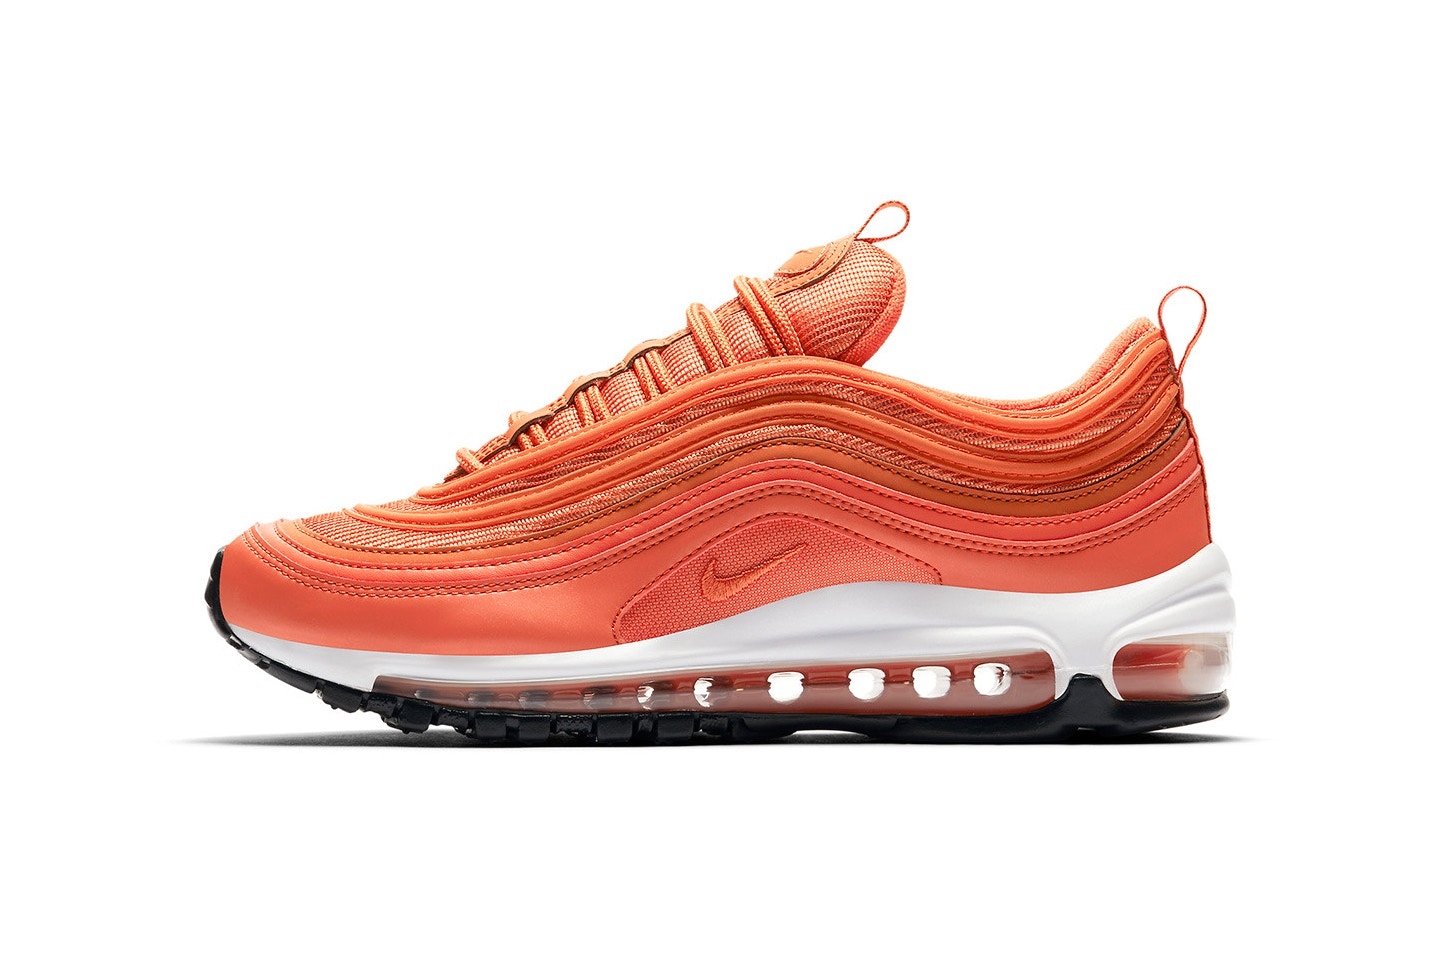 PUMA's IGNITE evoKNIT Fade [SneakPeak] nike air max 97 orange 1